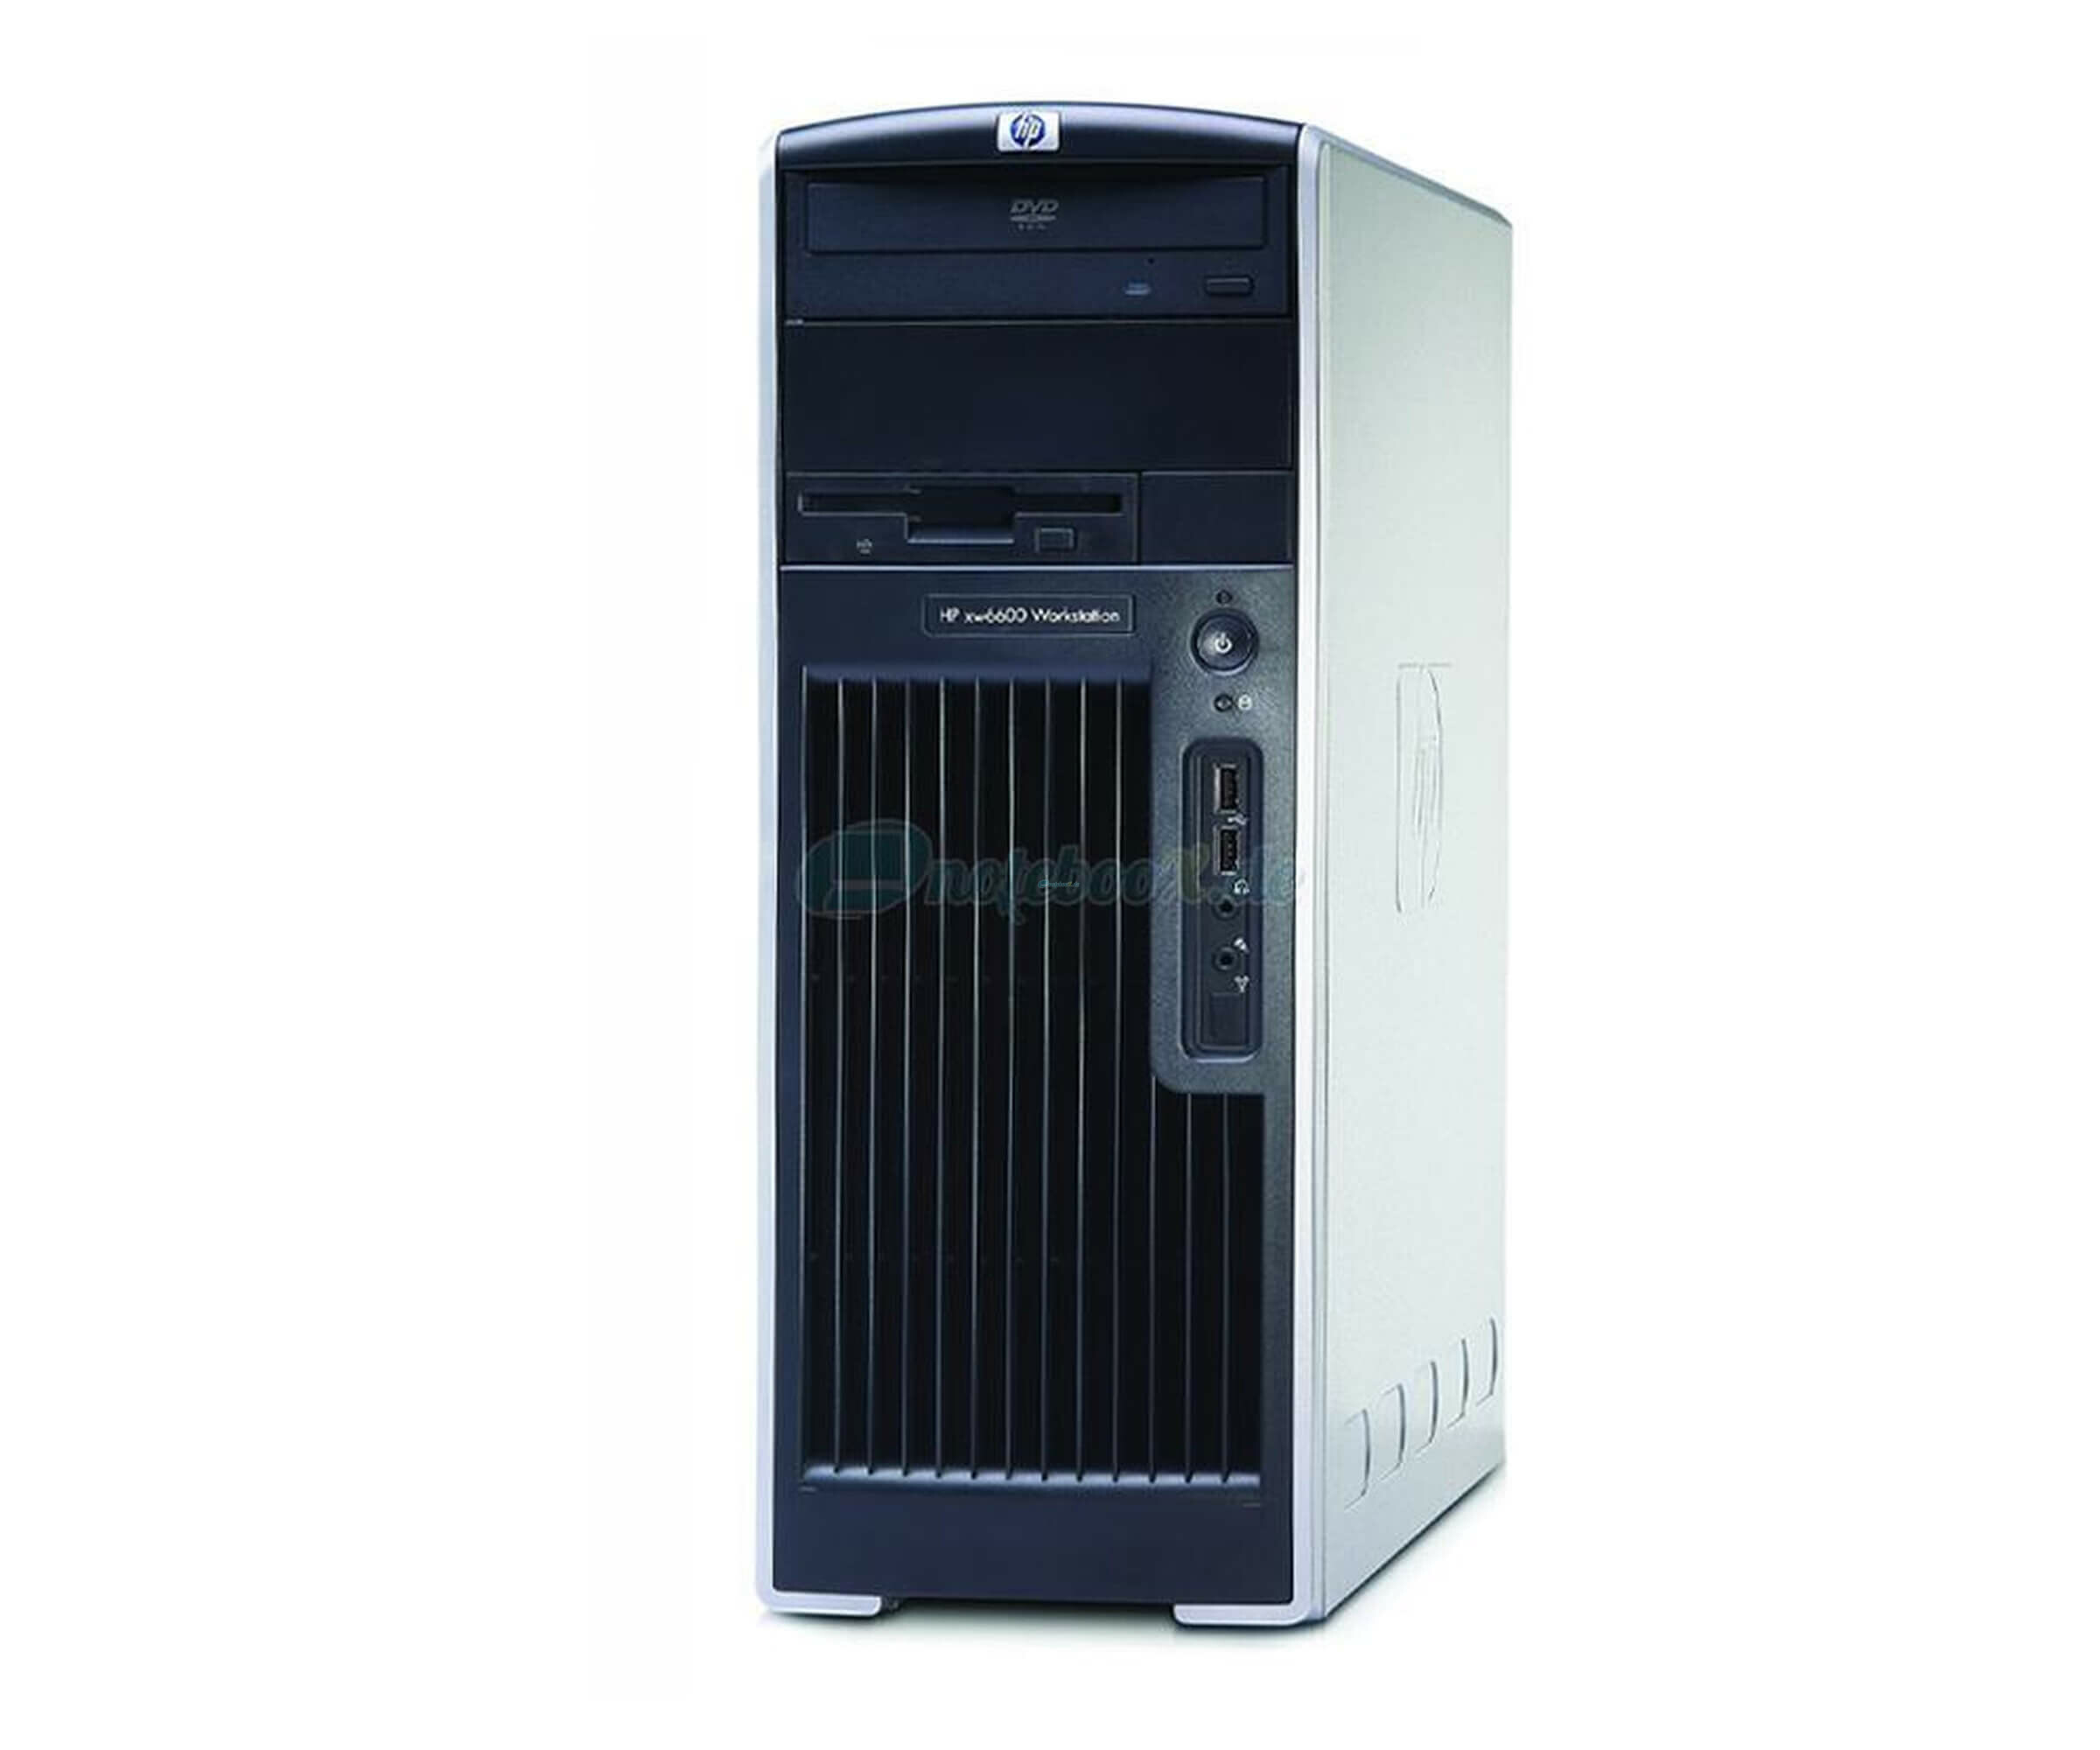 HP Workstation xw6600 - Vista - 8x C2D 2.33 GhZ - 6GB RAM - 160GB HDD - DVDRW - Used